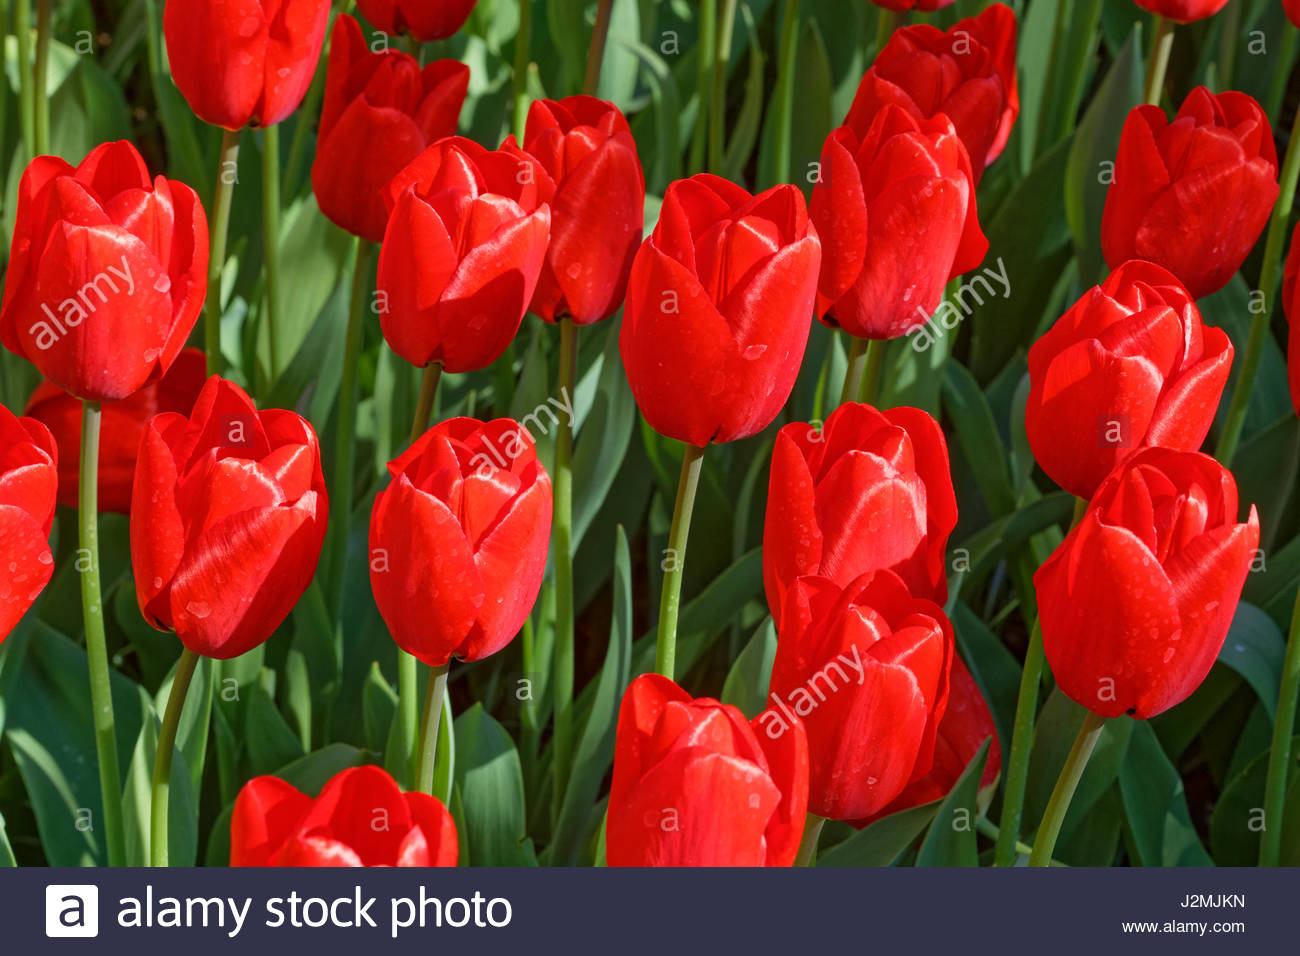 tulips - Stock Image